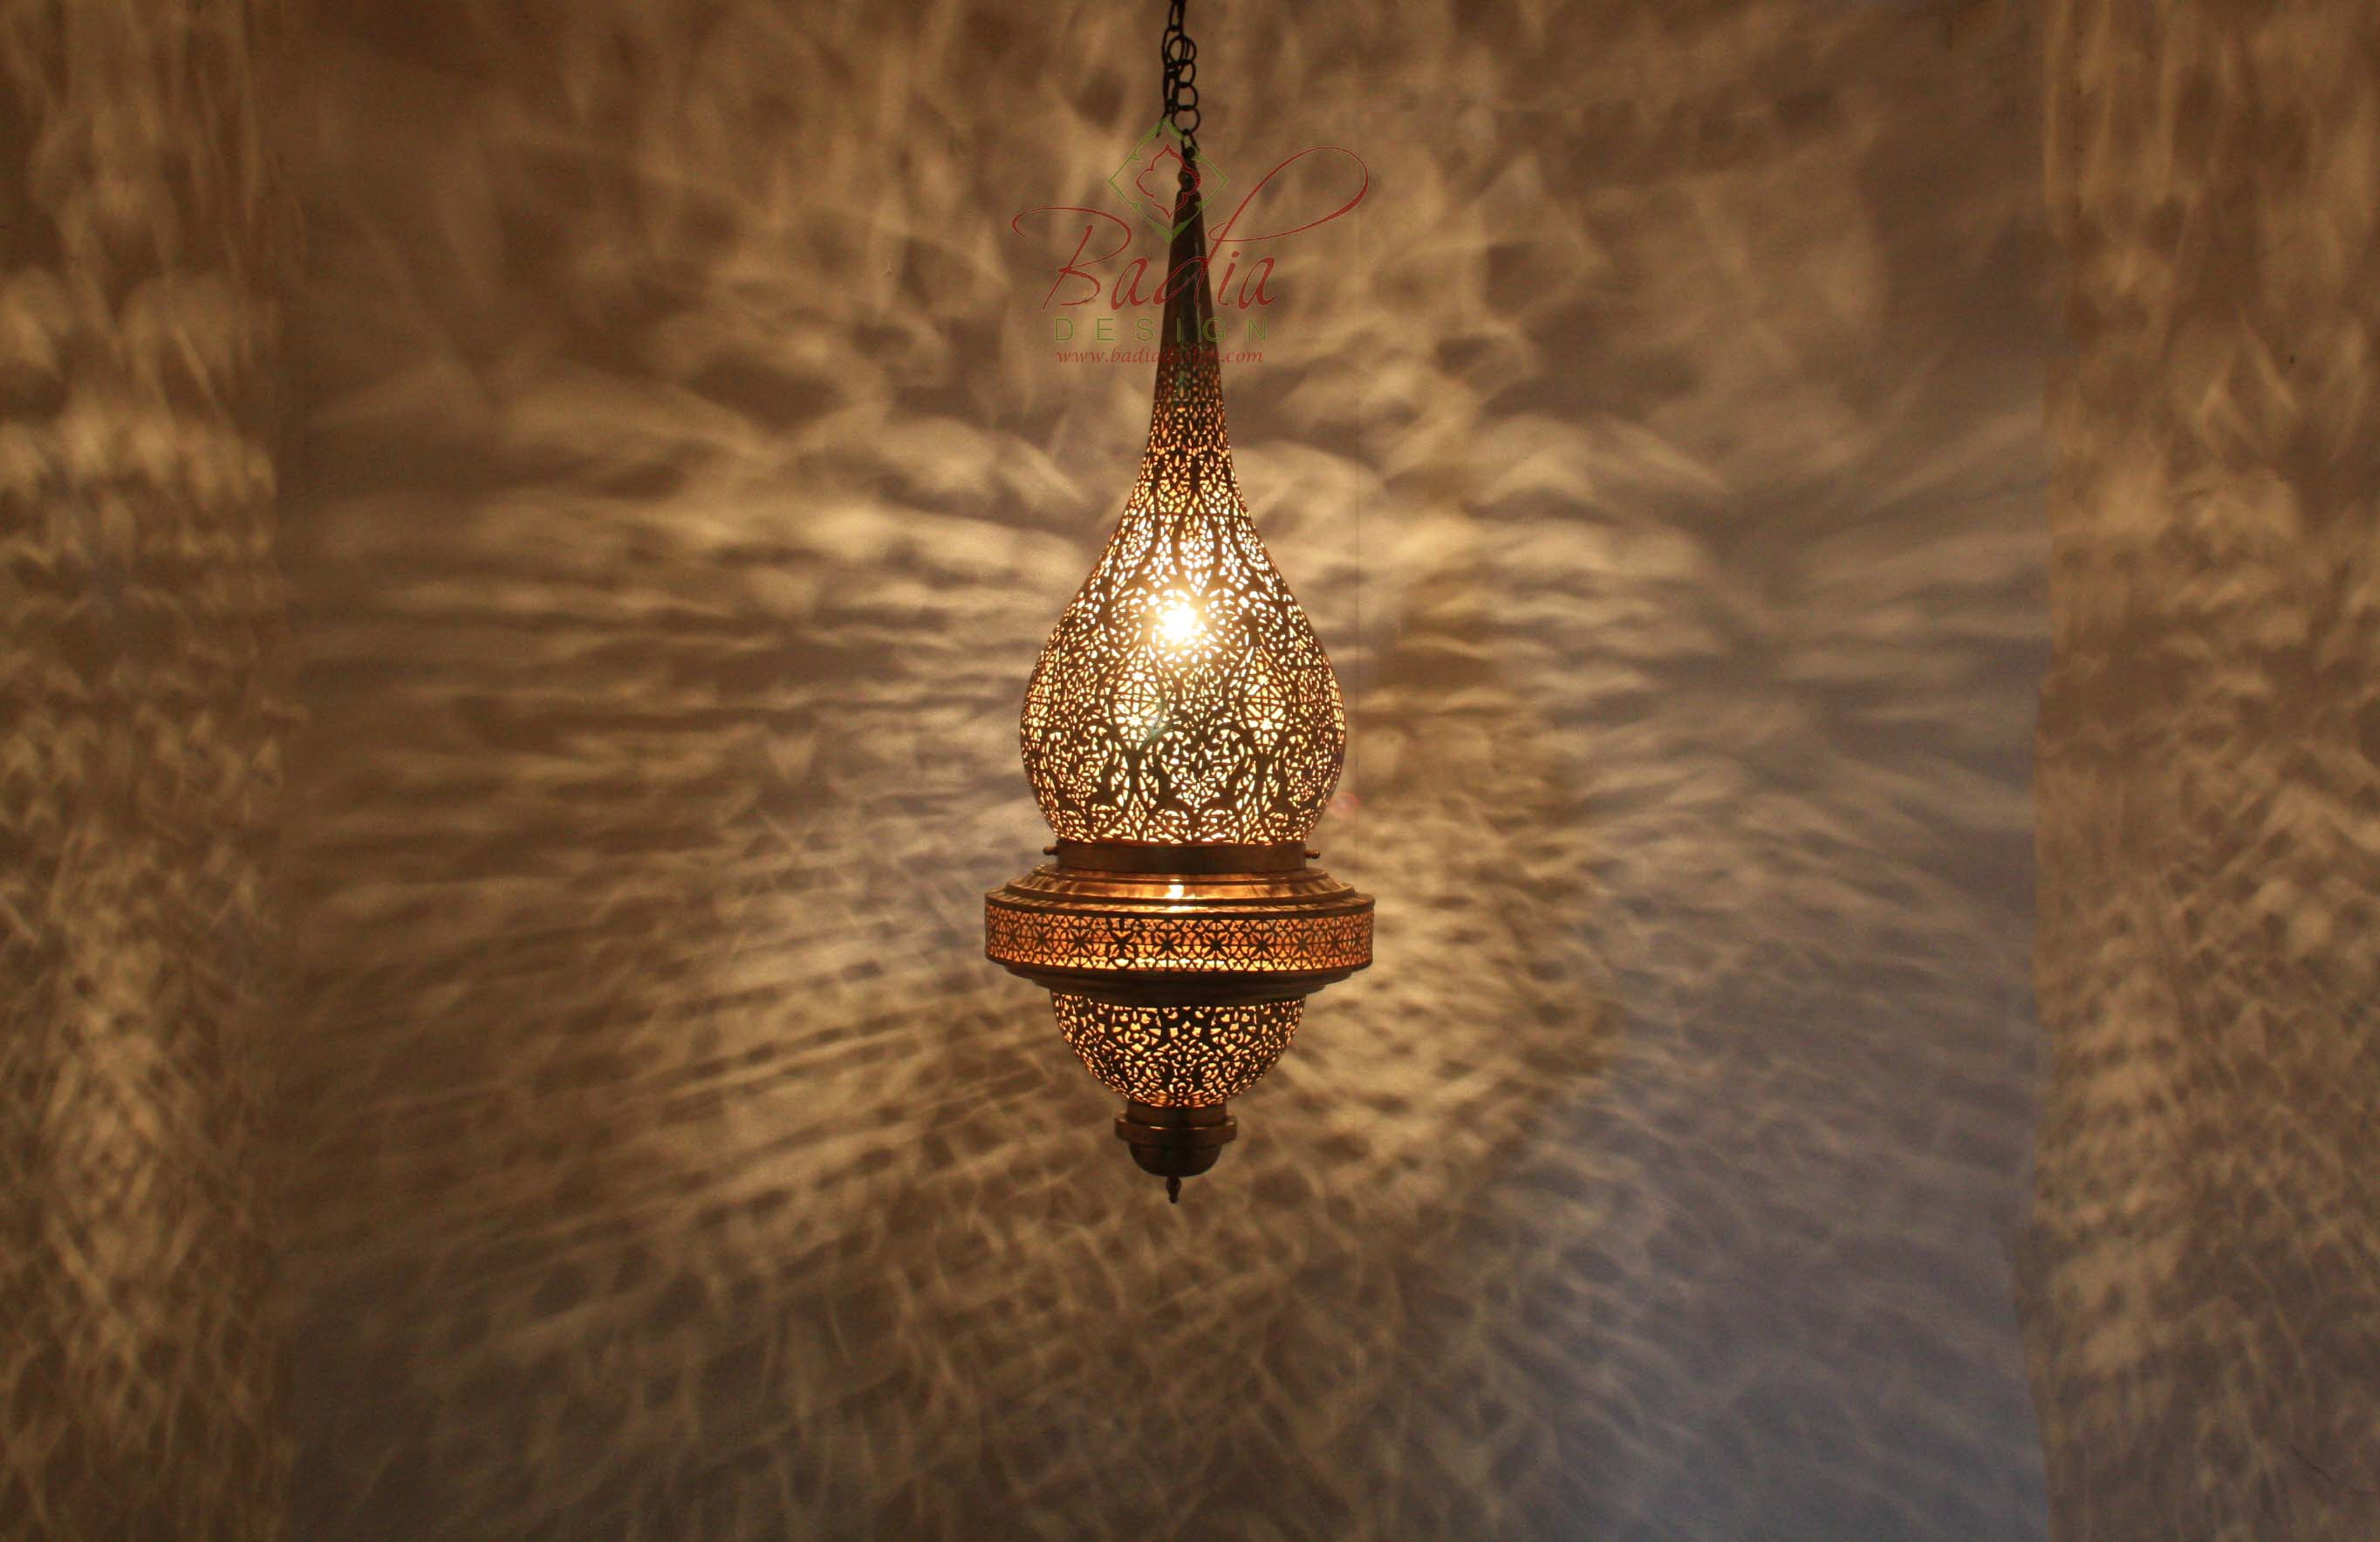 intricately-designed-hand-punched-brass-chandelier-ch250-2.jpg